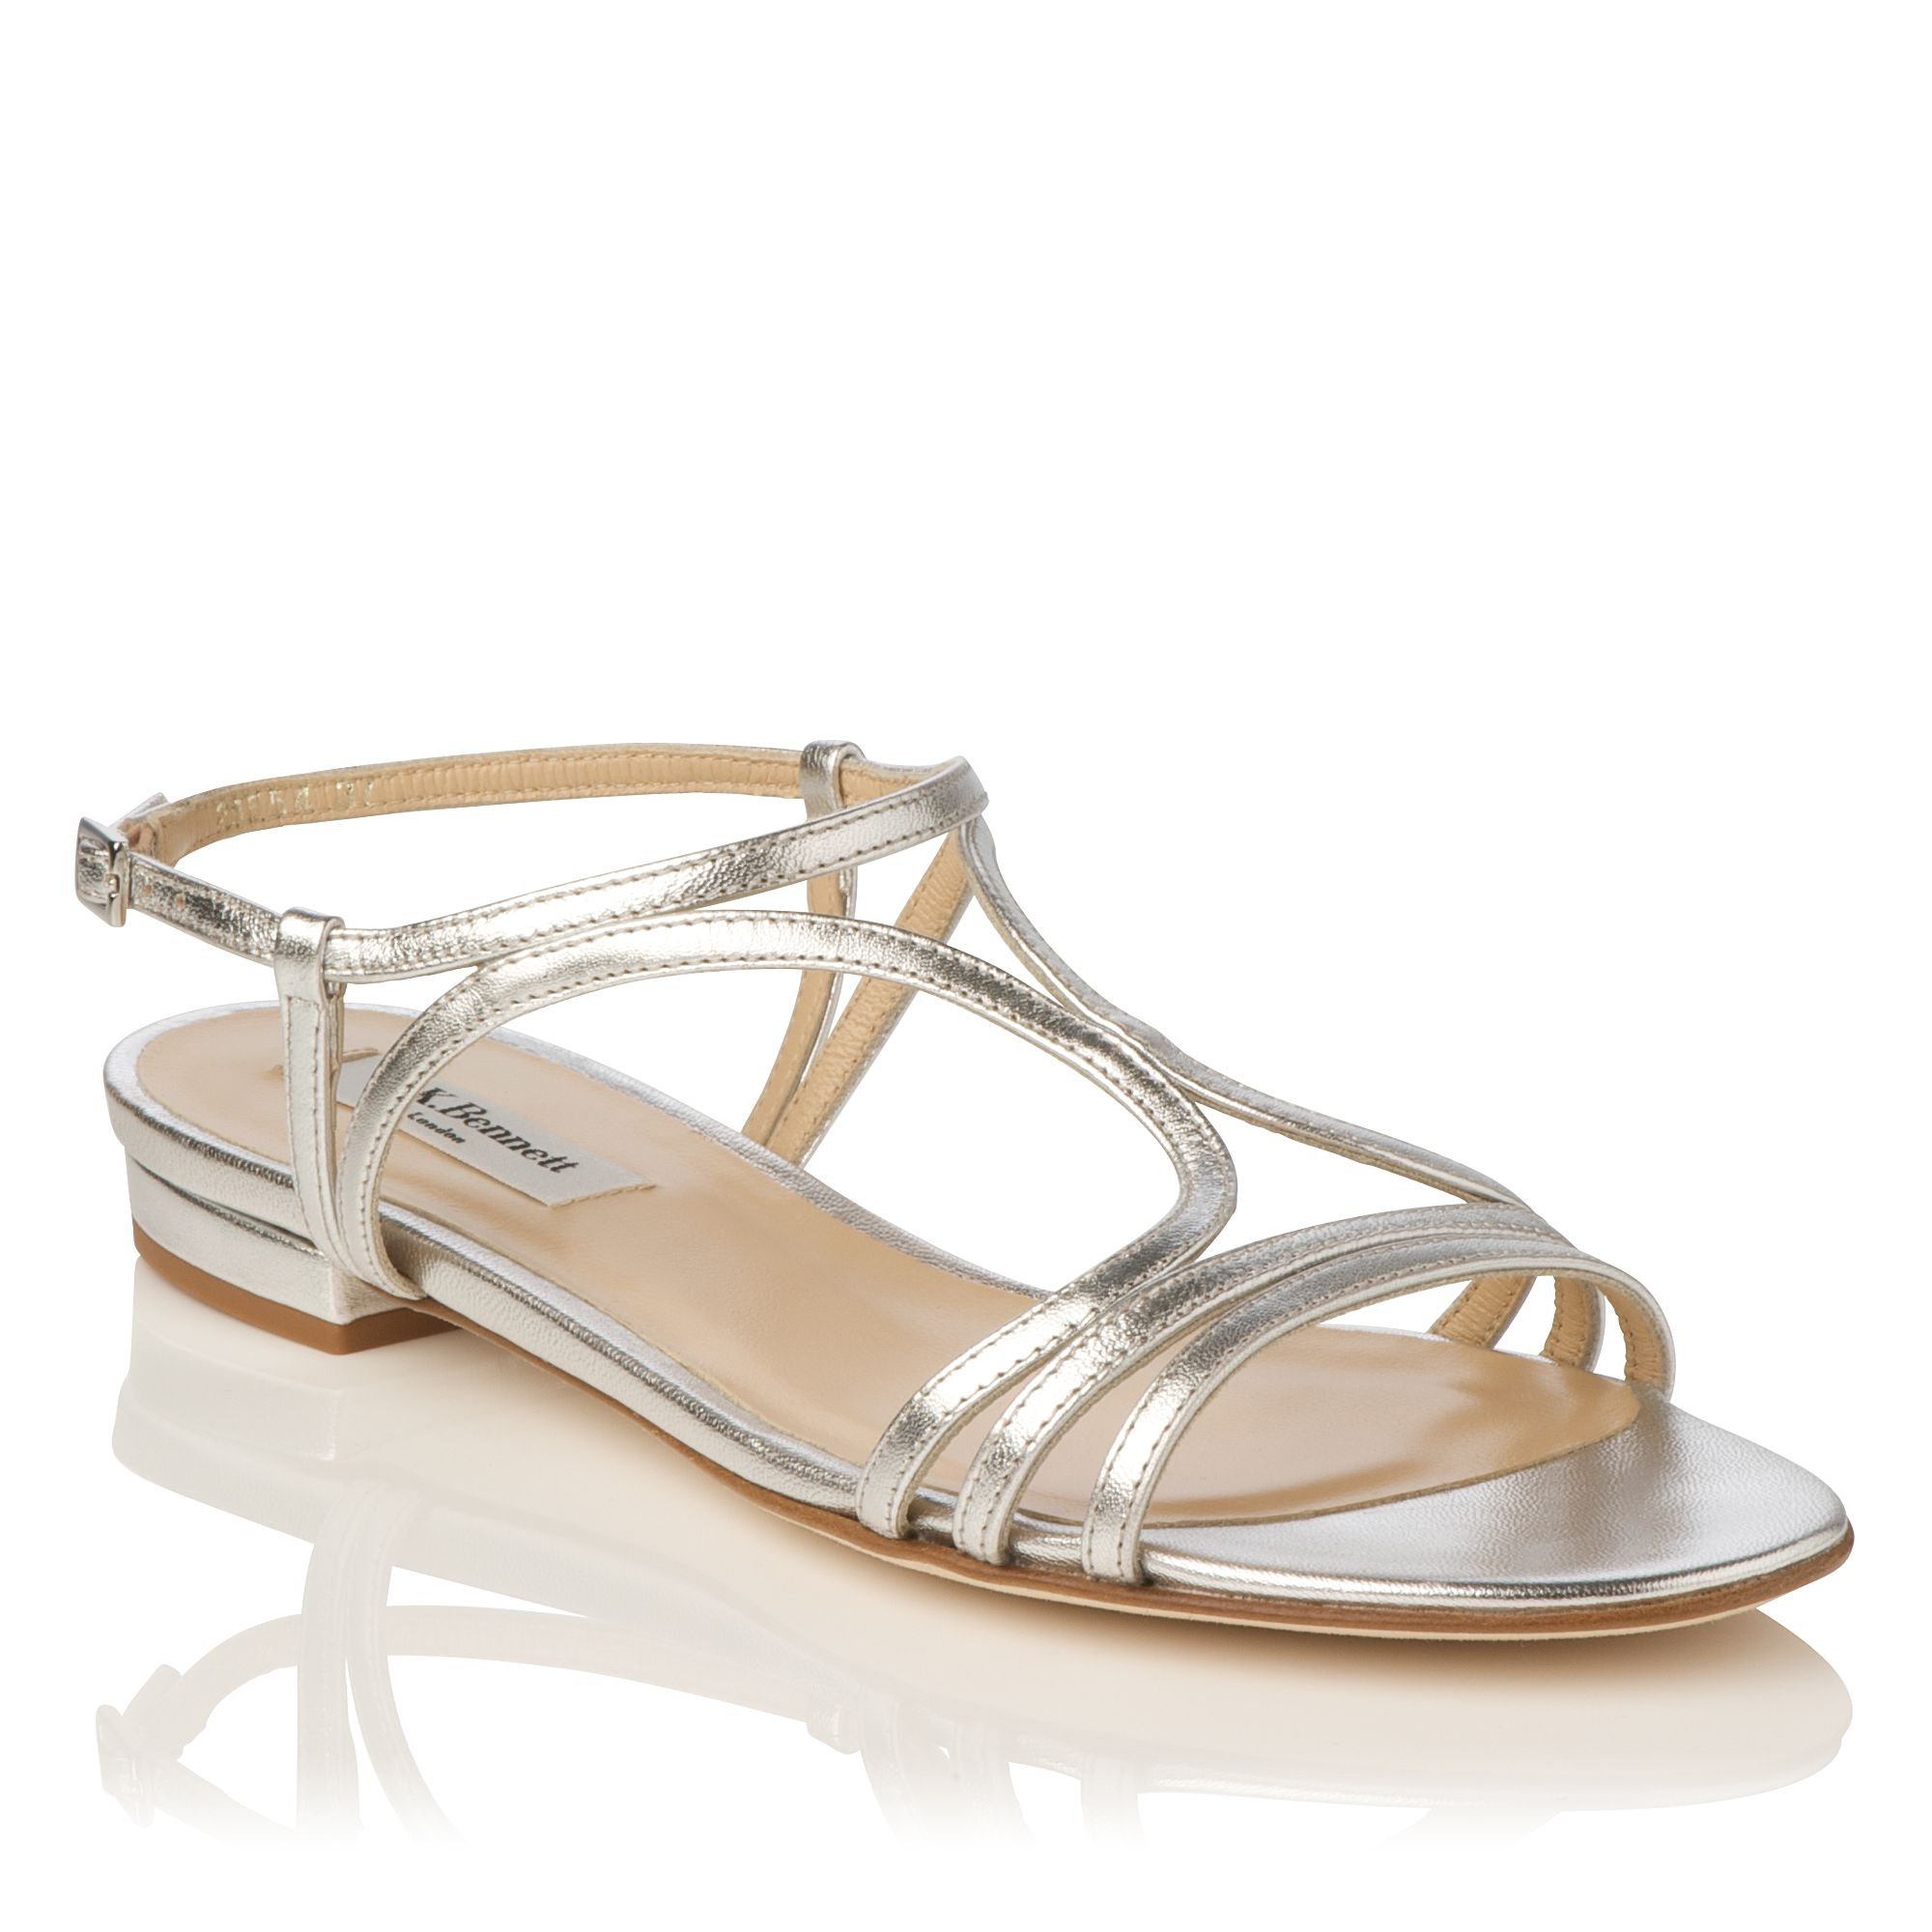 Lennie metallic sandals